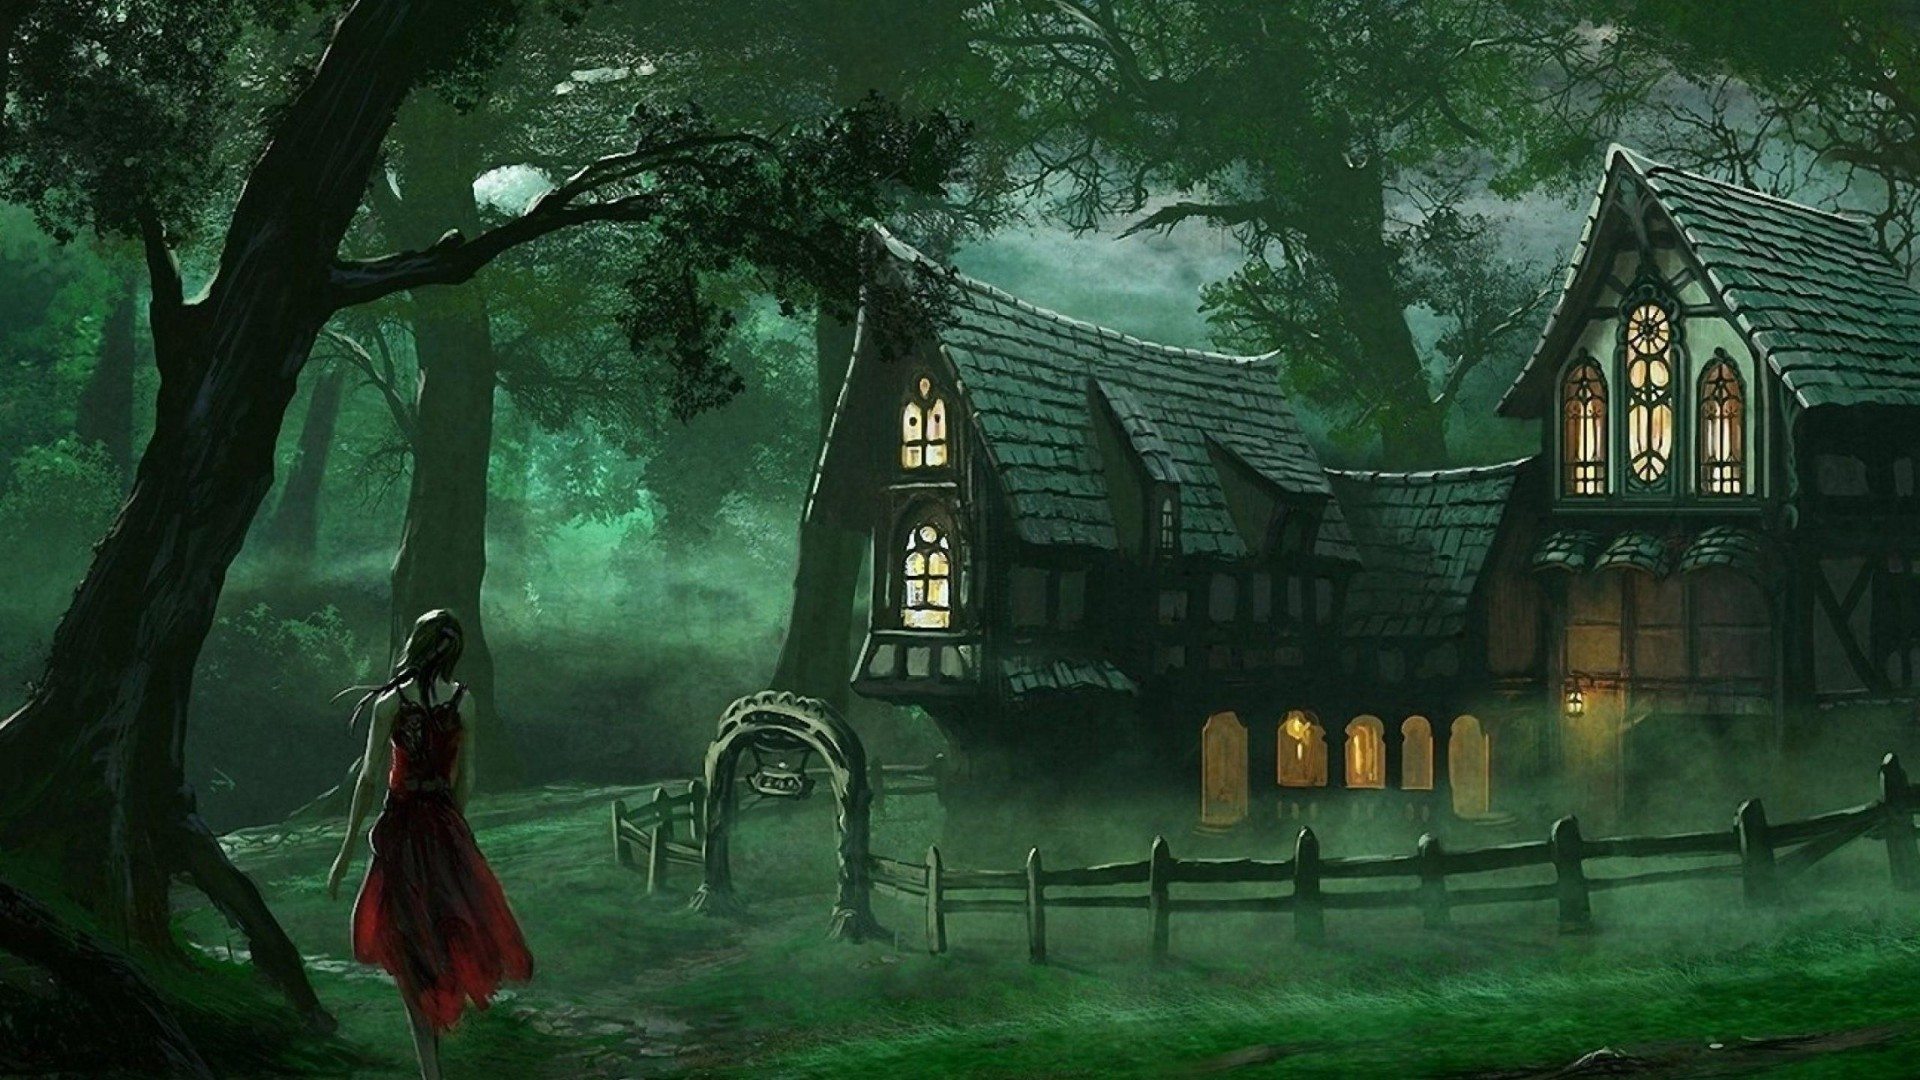 Spooky House Fantasy Forest Wallpaper